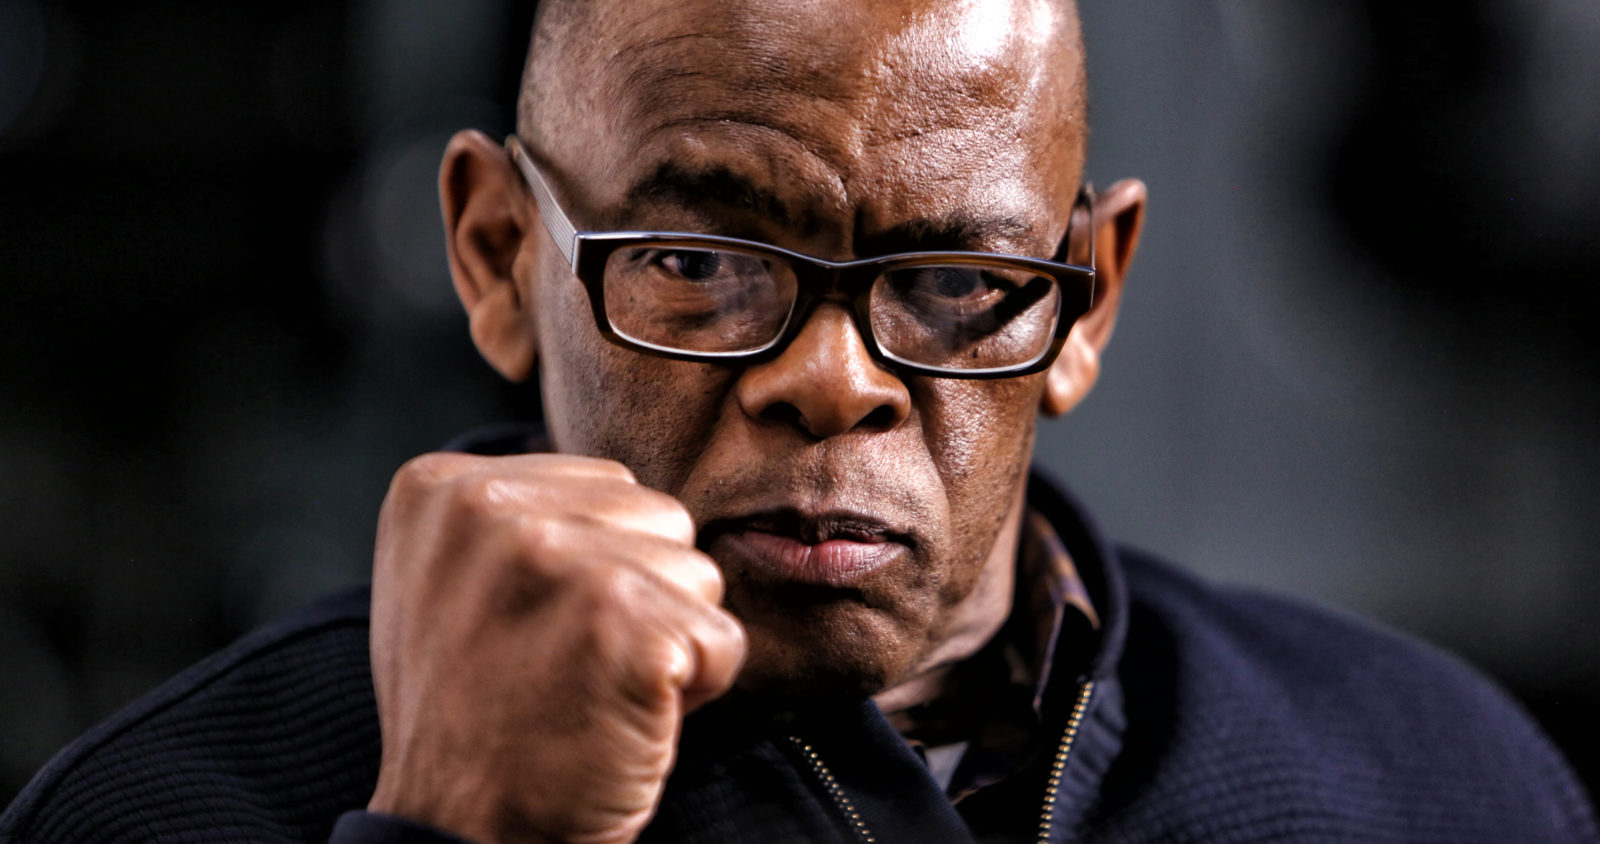 Morocco vote kerfuffle leaves Magashule in a tizz